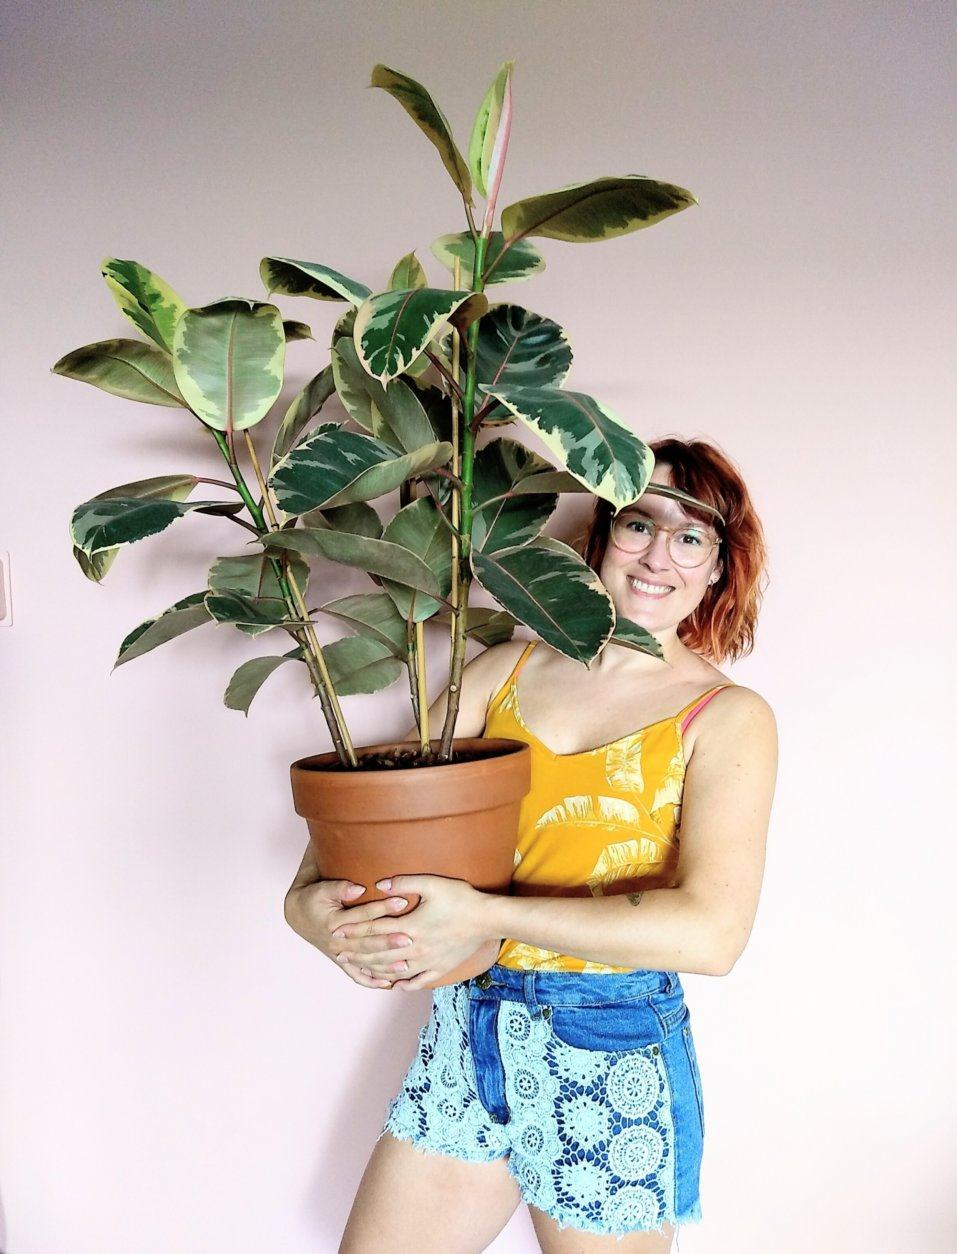 This undated photo shows Karin Scholte holding a Ficus elastica plant in the Netherlands. Scholte's Instagram feed is devoted to houseplants. (Patricia Scholte/Karin Scholte via AP)